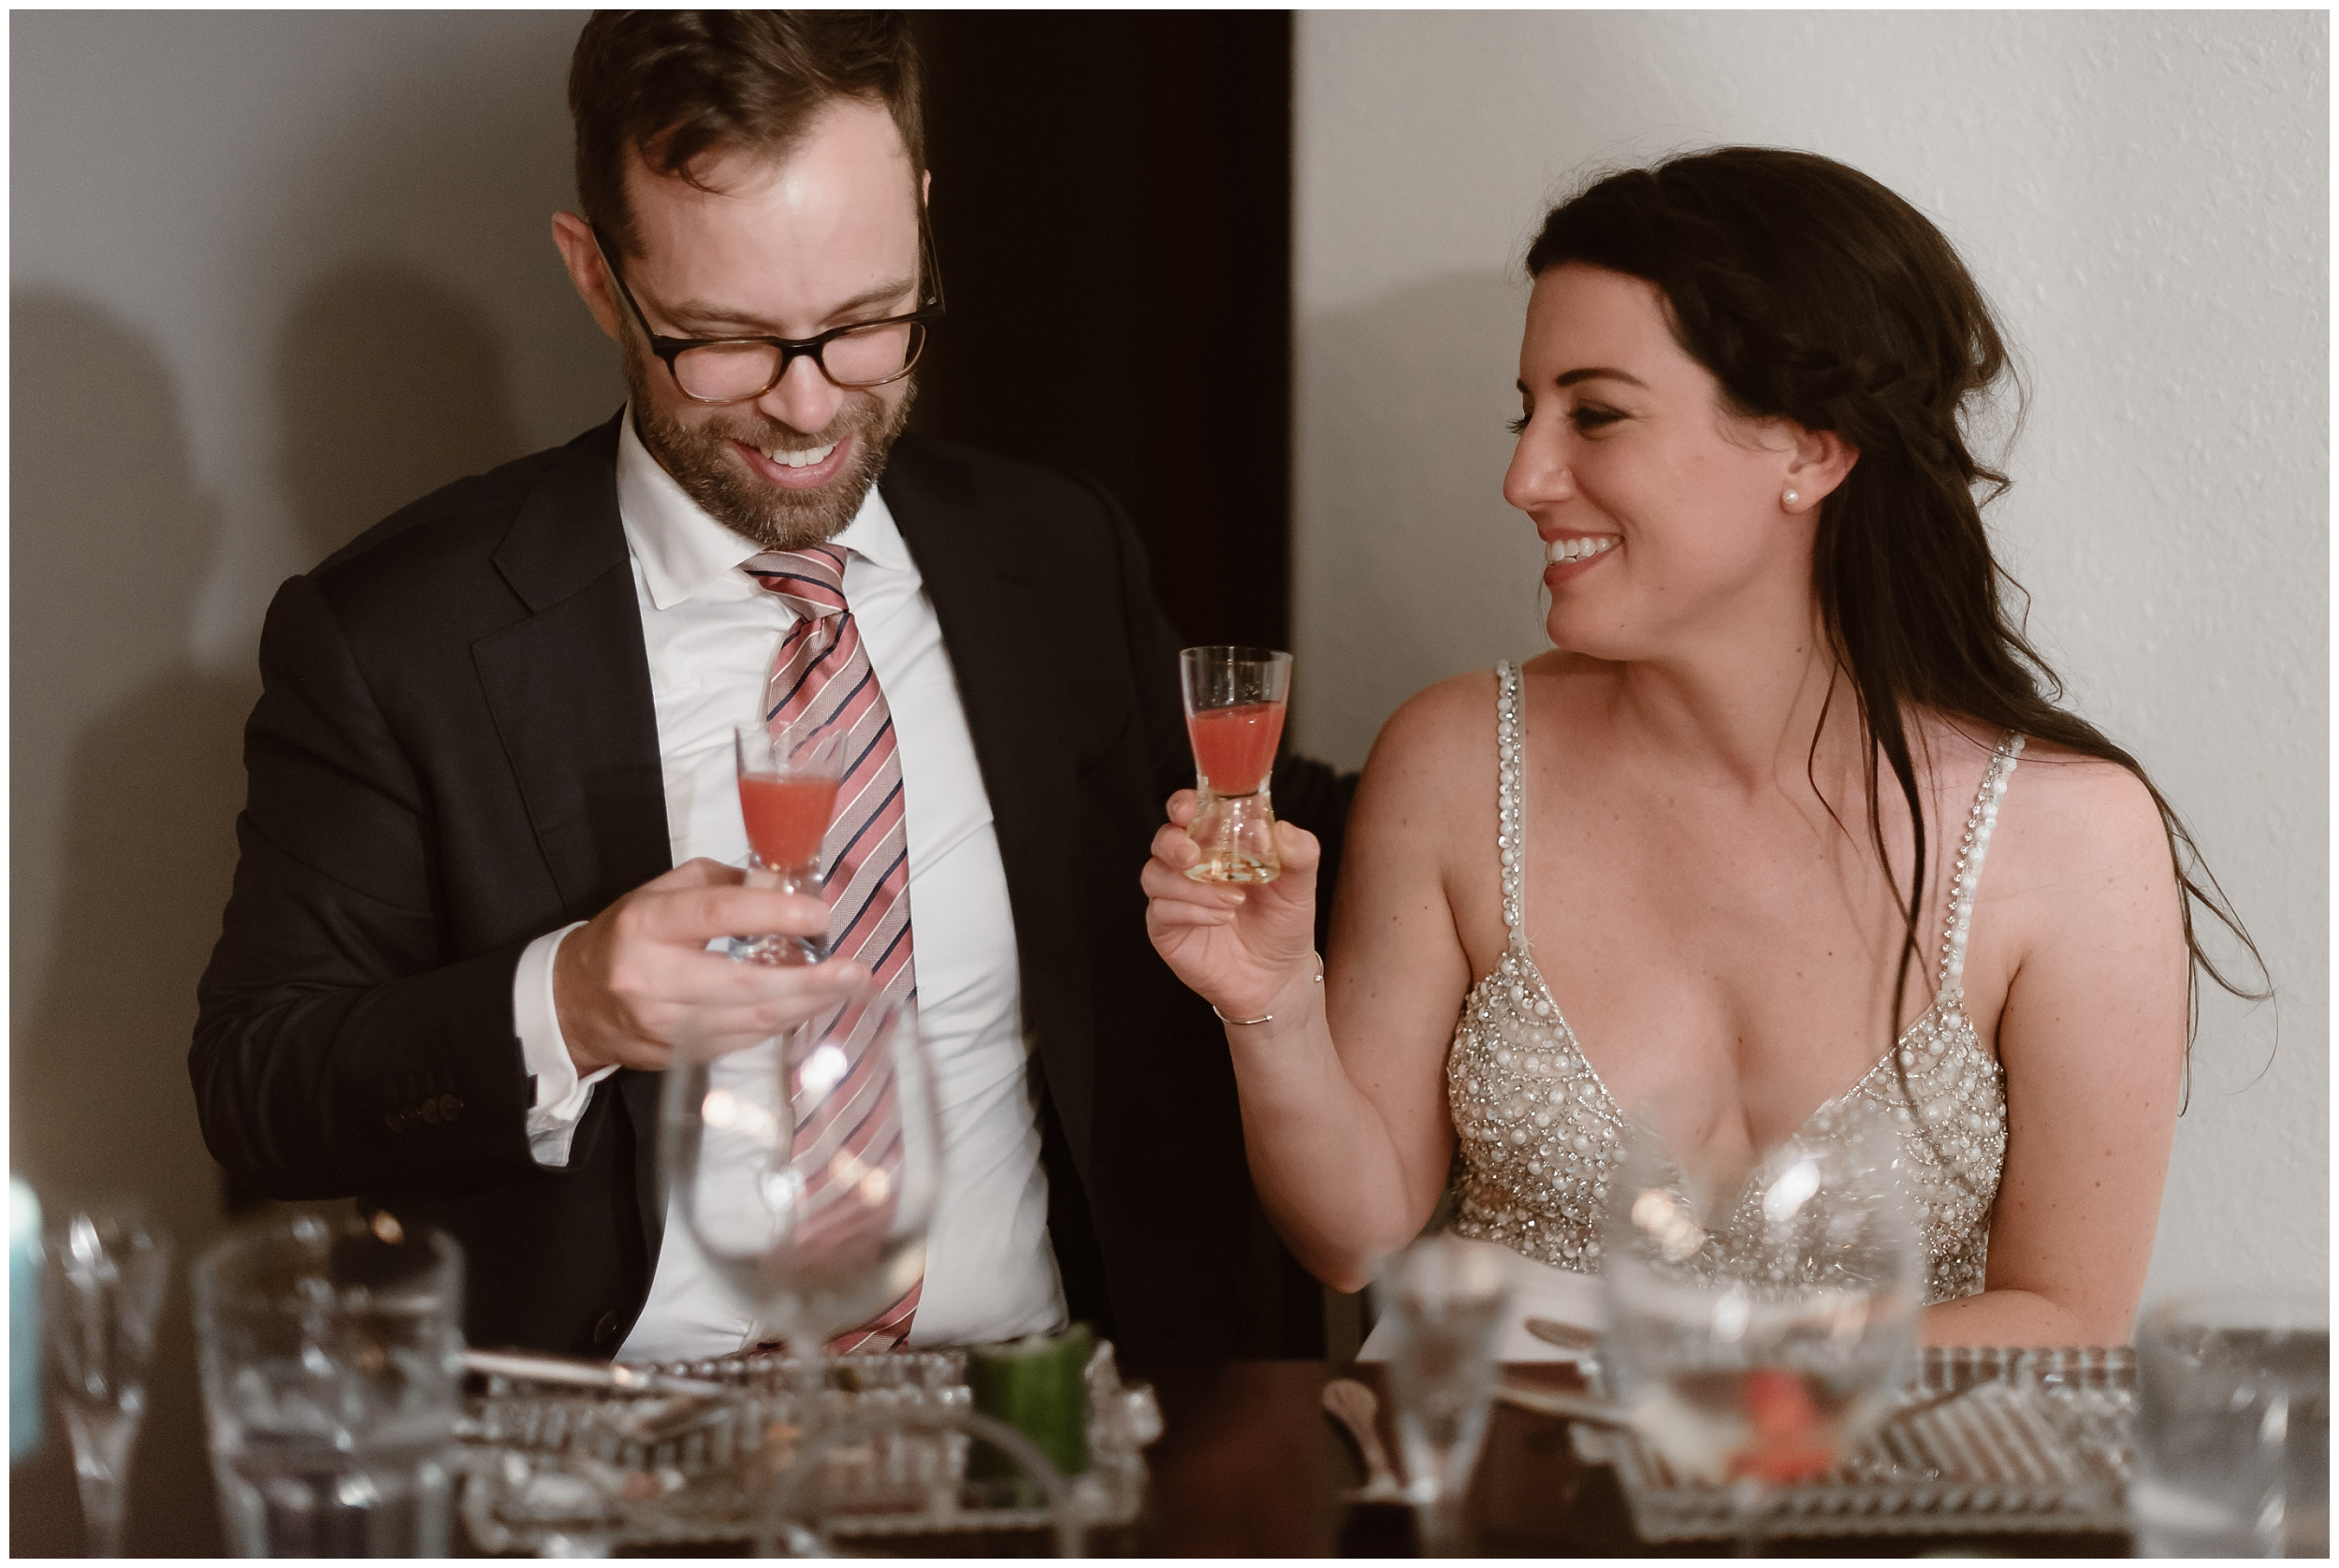 Katie and Logan sit at a table filled with gourmet food and drink prepared by their hired private chef. Katie looks at Logan, who's looking down at his glass of orange-pink beverage. They're about to cheers their Colorado mountain wedding.